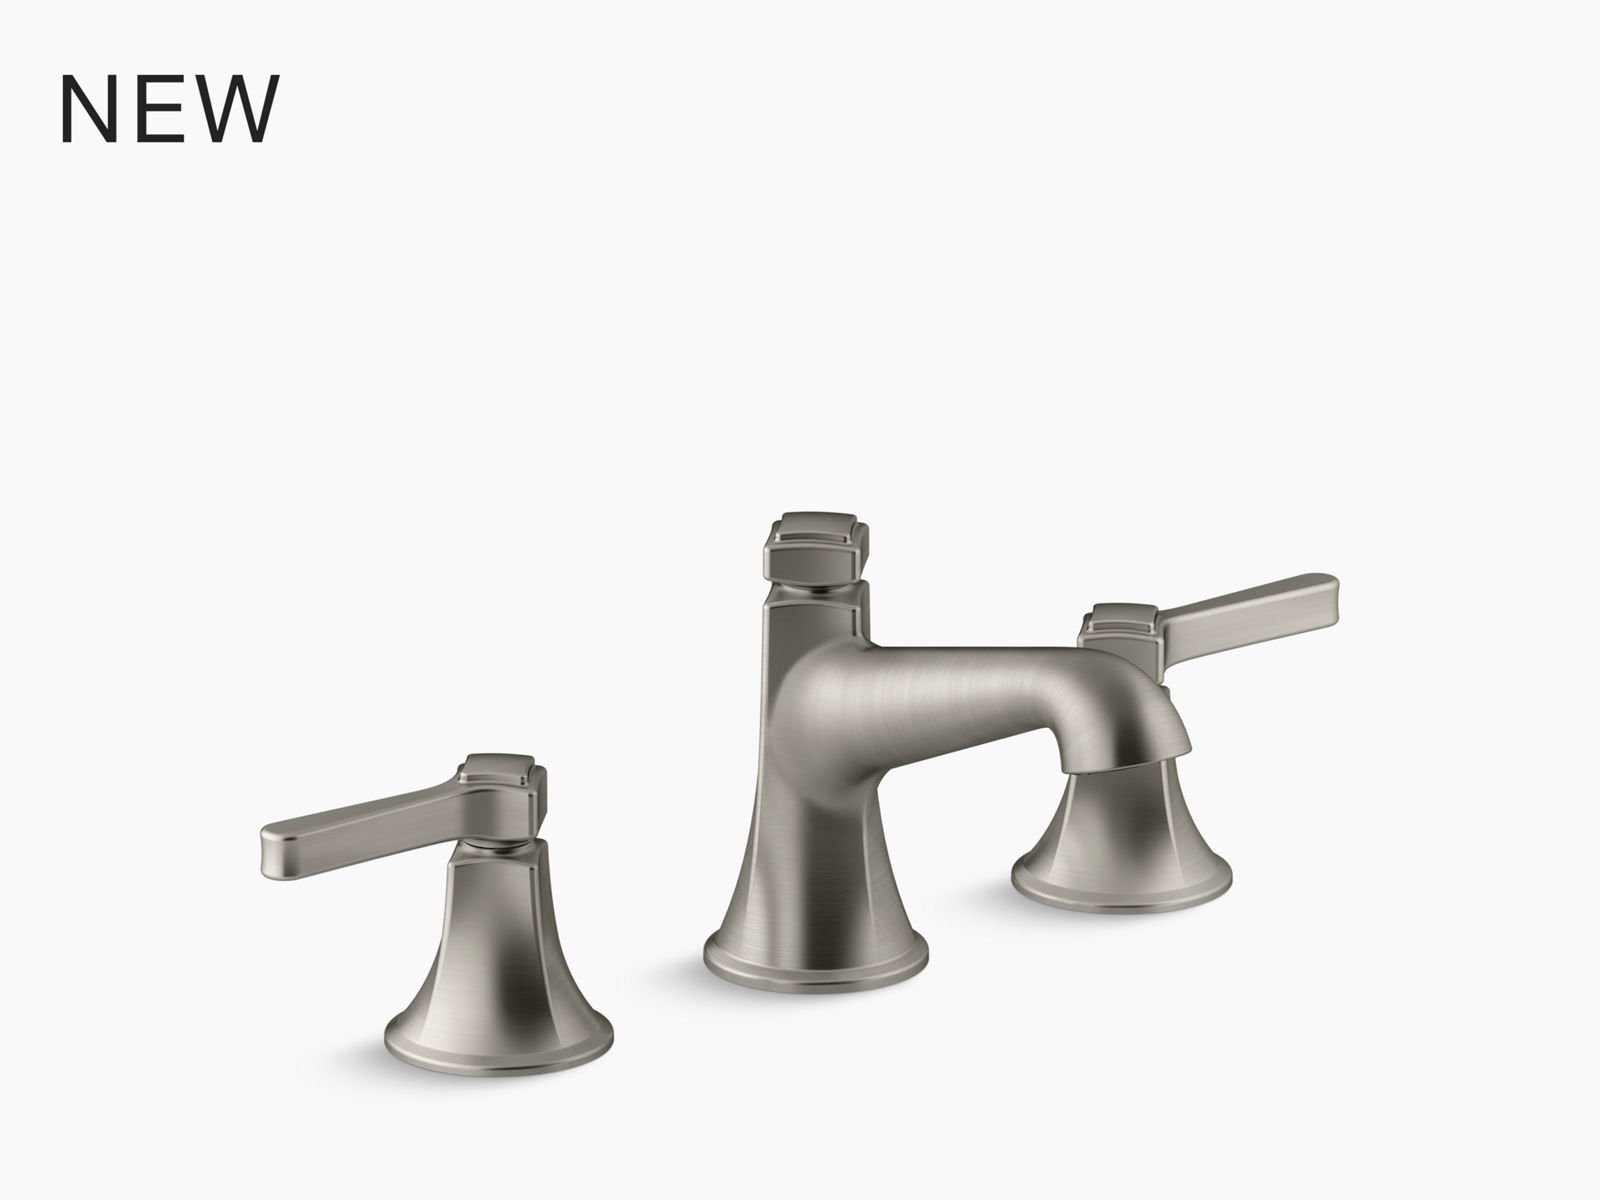 linwood pull out kitchen faucet with soap lotion dispenser